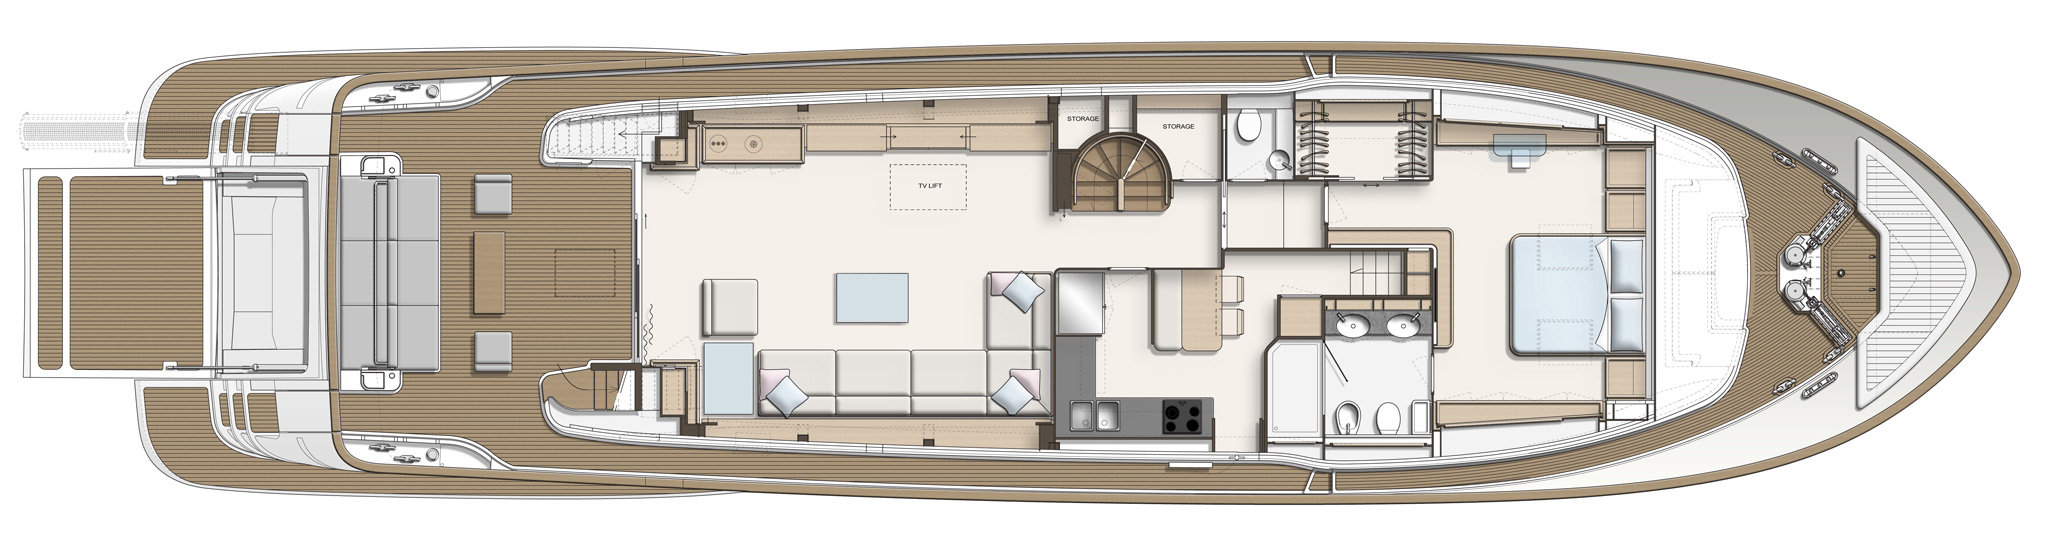 Custom Line Navetta 28 Layout (img-3)